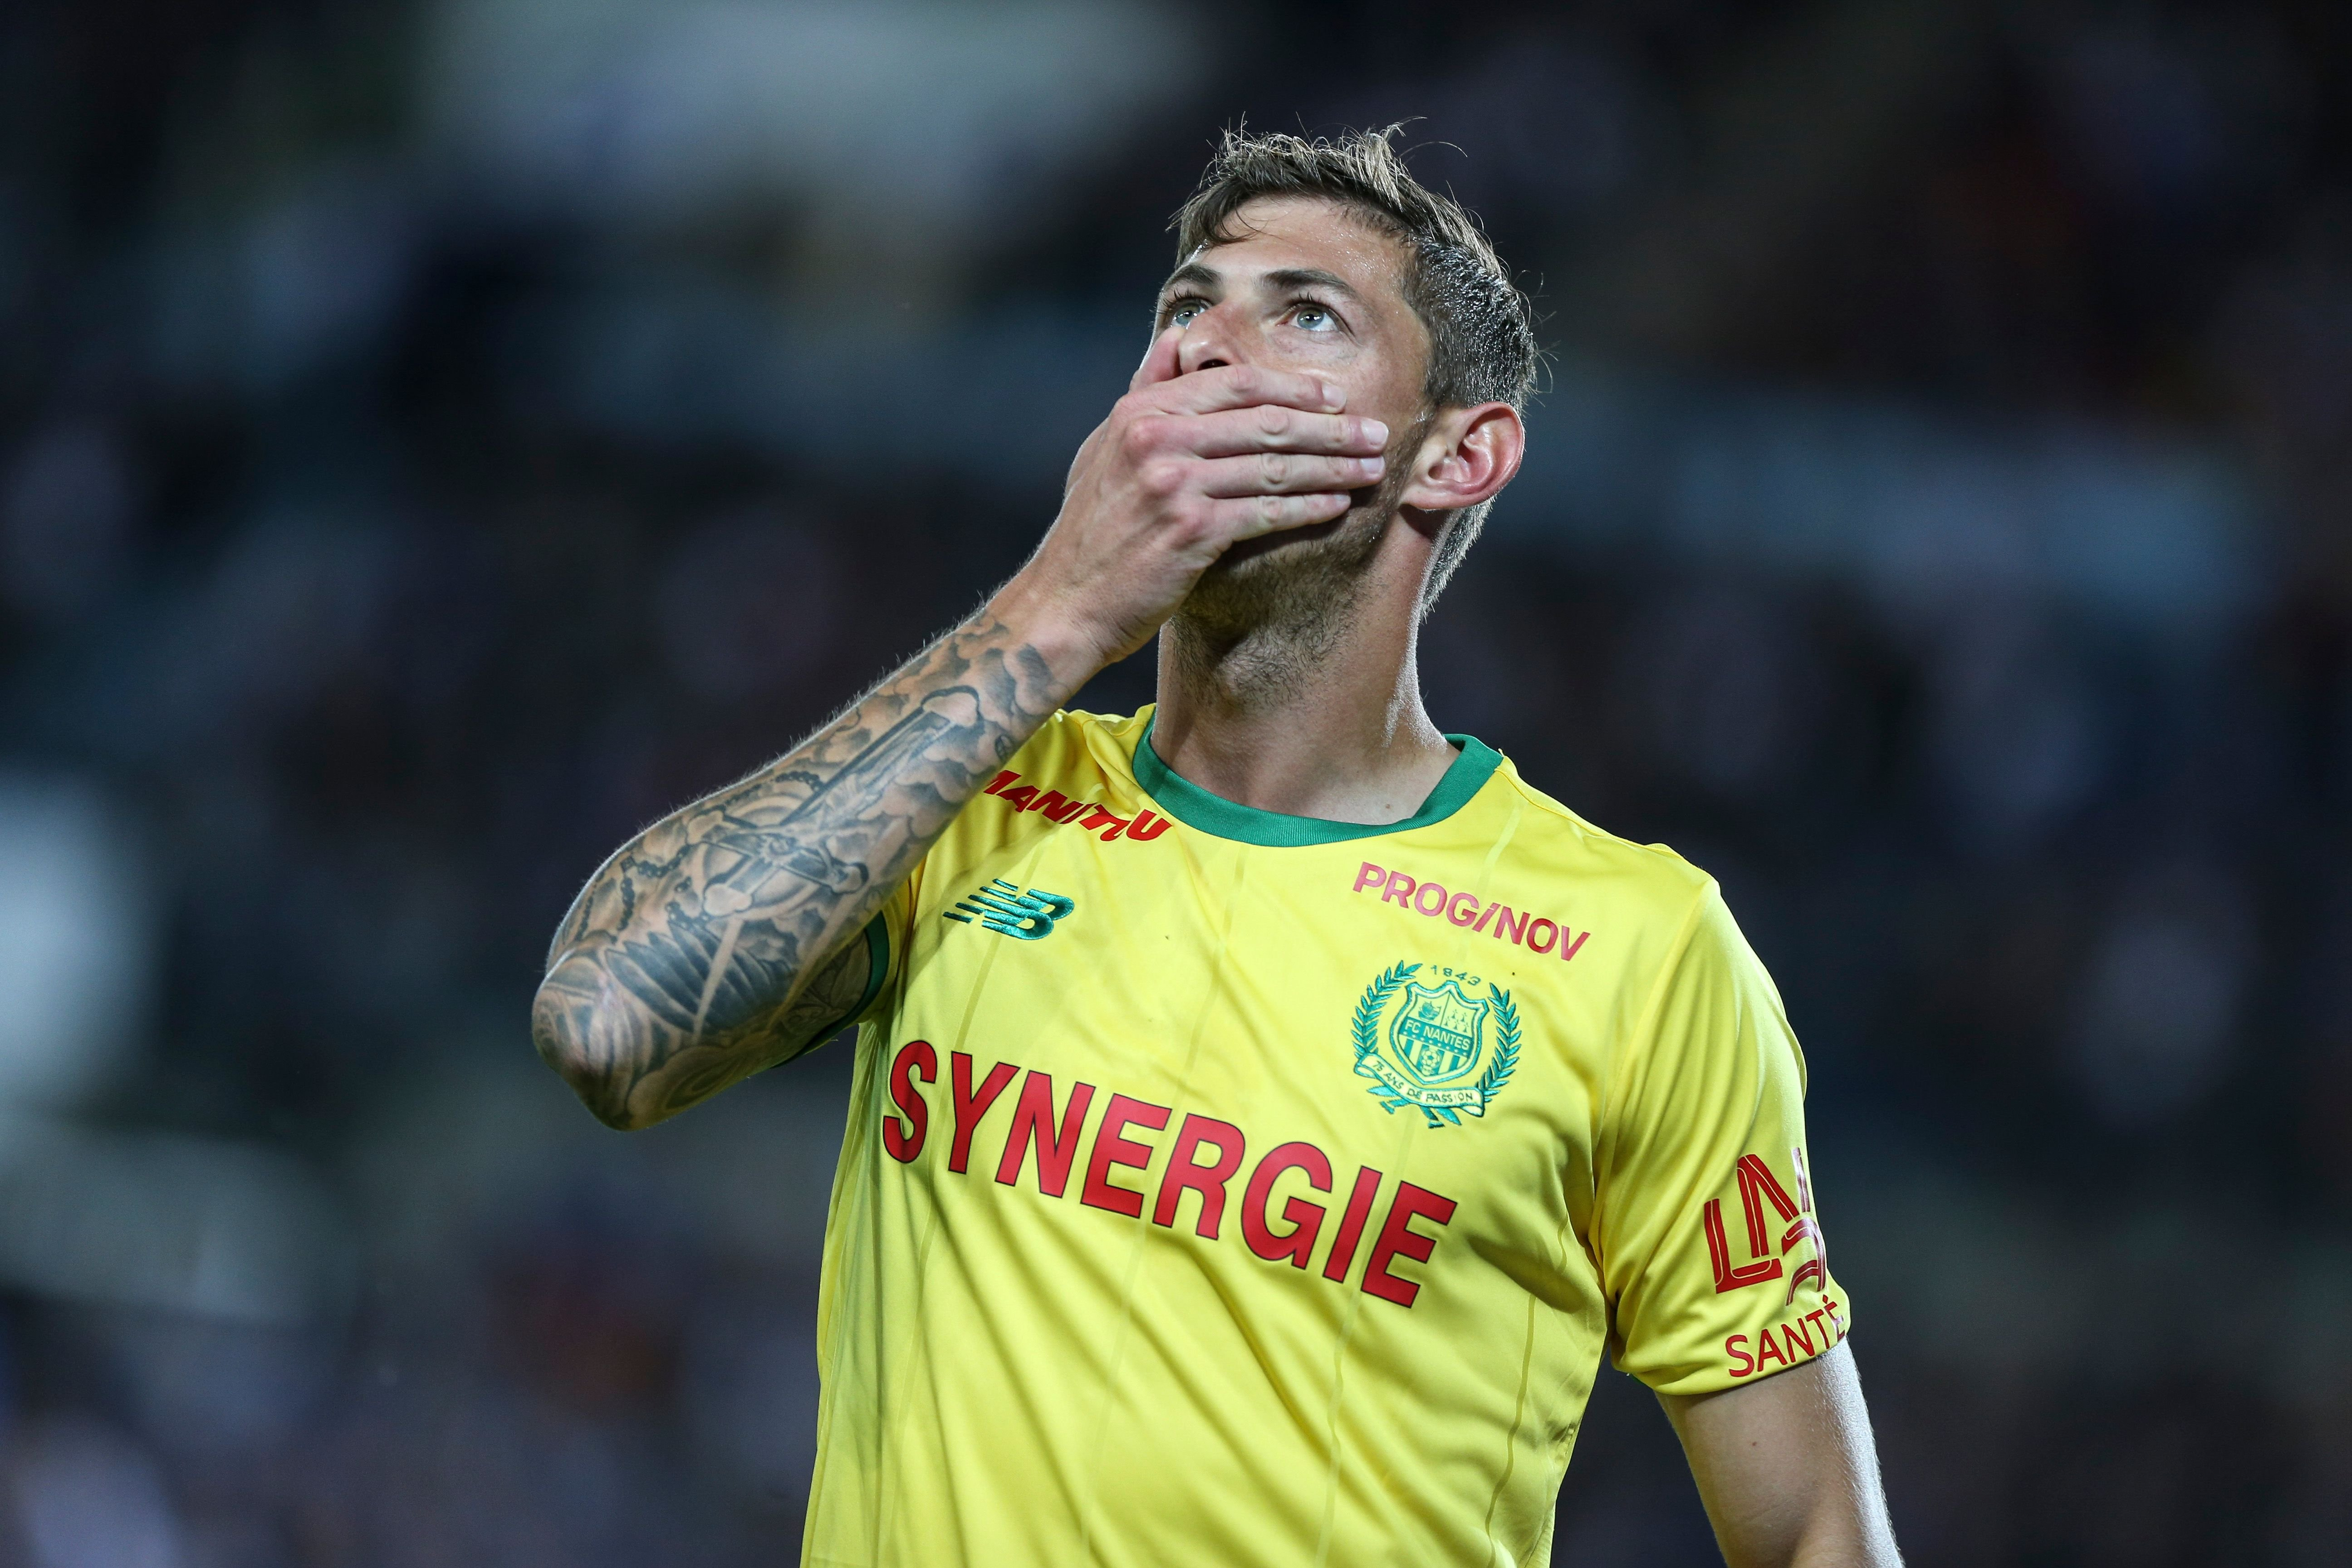 Nantes' players, Sala Emiliano, celebrate a goal during the French L1 football match between Strasbourg (RCSA) and Nantes (FCN) on September 1, 2018, at the Meinau Stadium in Strasbourg, eastern France. | Foto von: Elyxandro Cegarra/NurPhoto via Getty Images